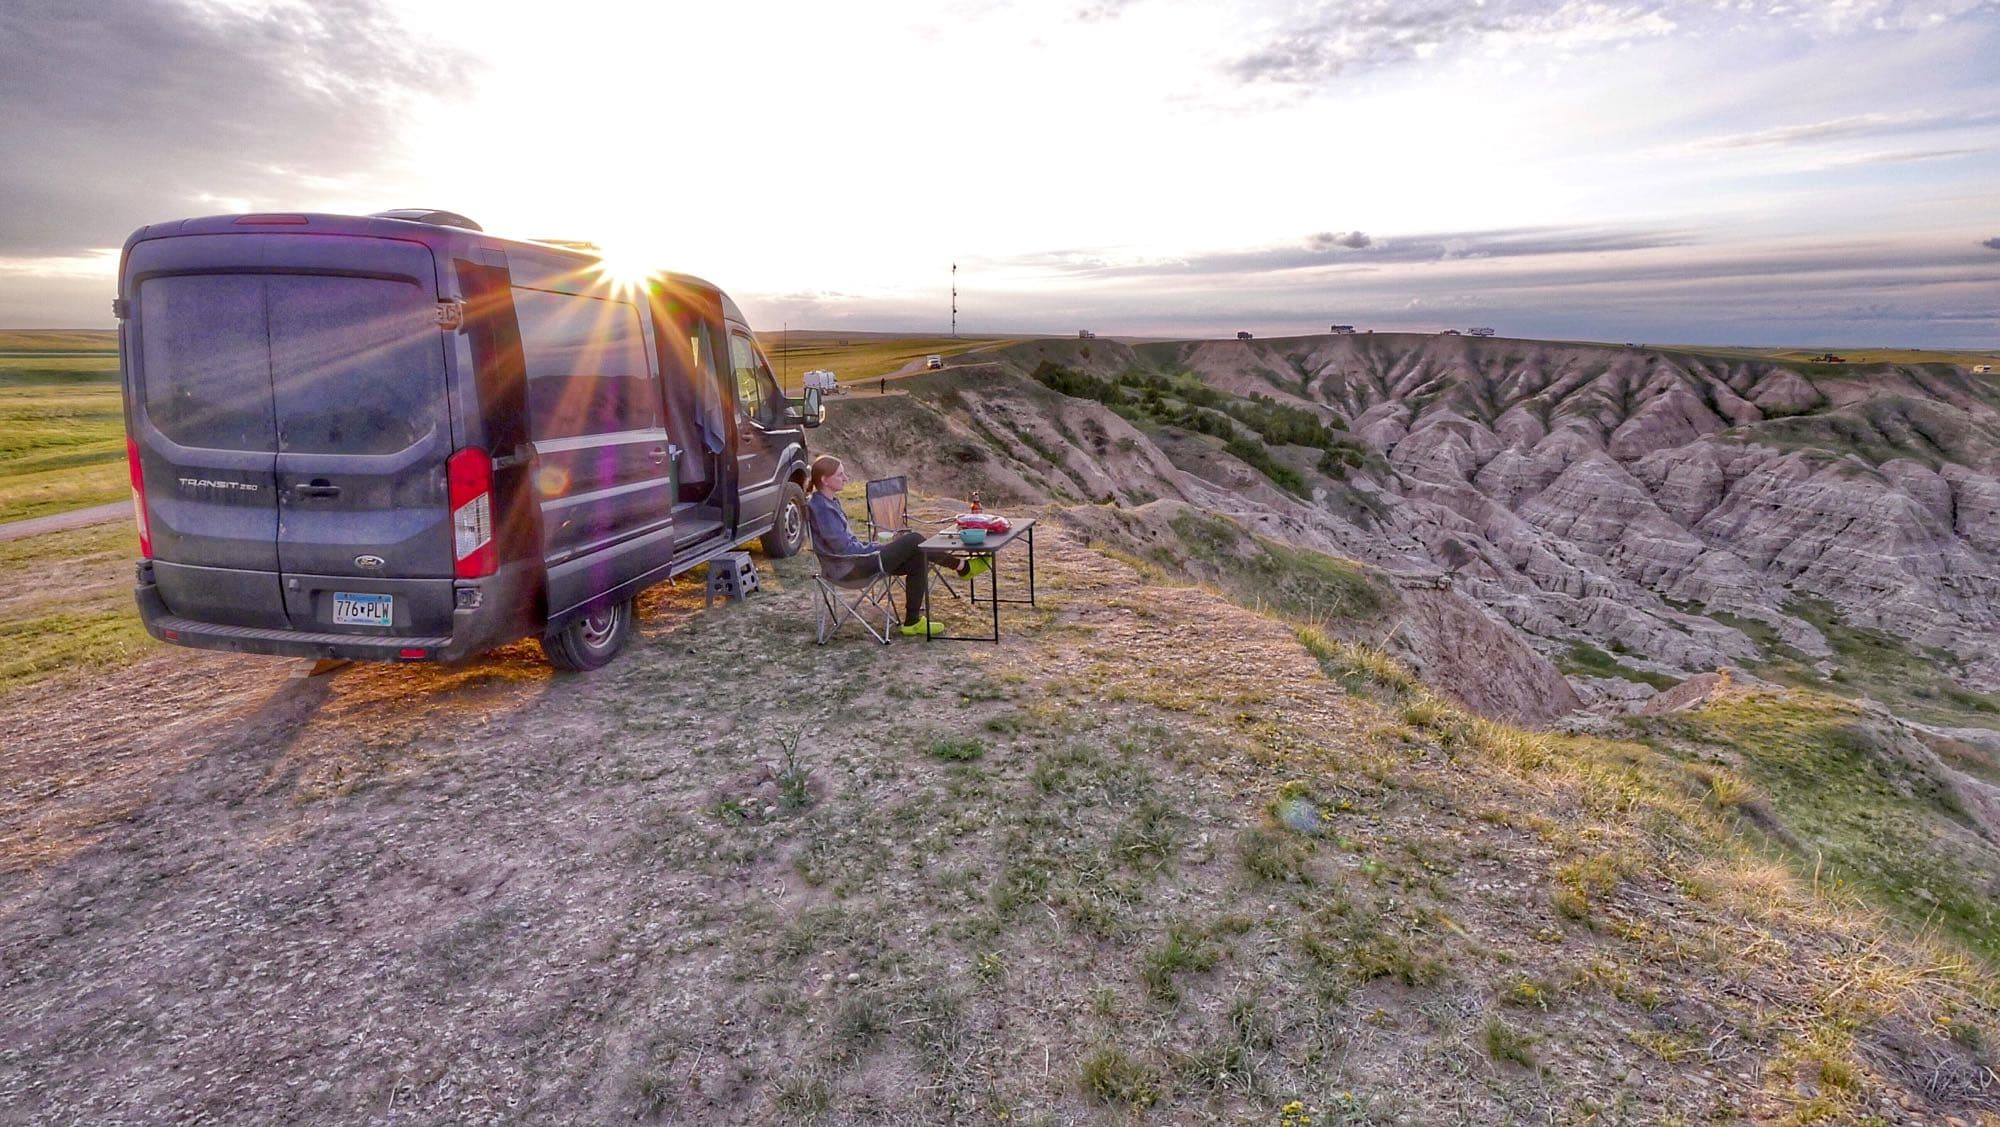 Boondocking outside the Badlands. Ask us about our experiences boondocking. We love to share what we've learned!. Ford Transit 2015